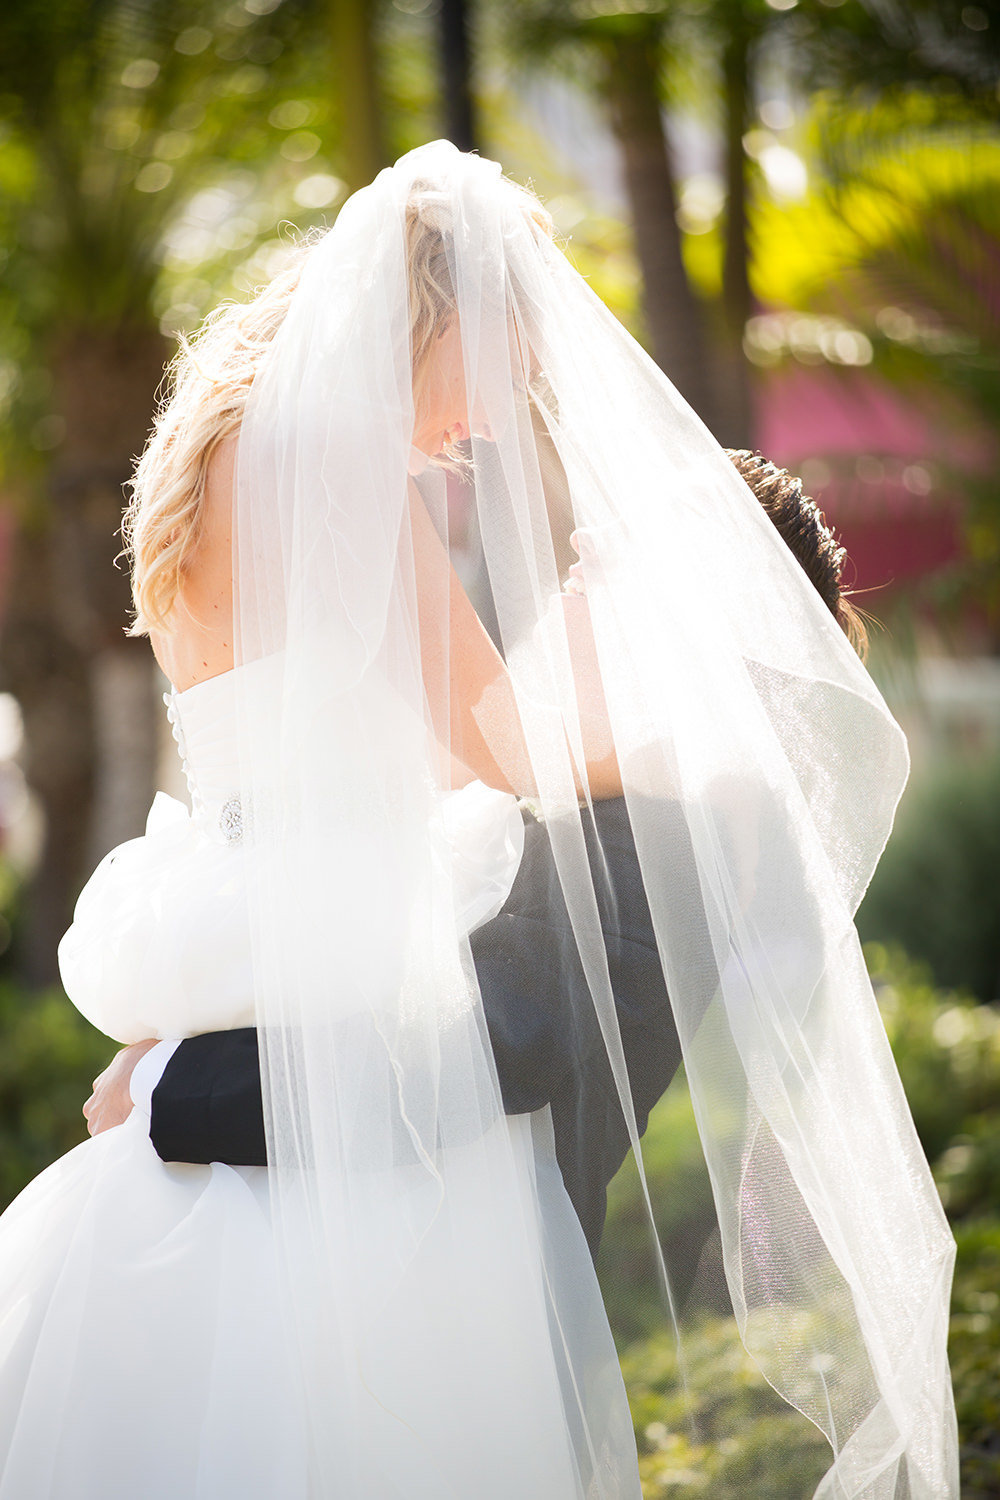 Great moment of groom lifting the bride with flowing veil